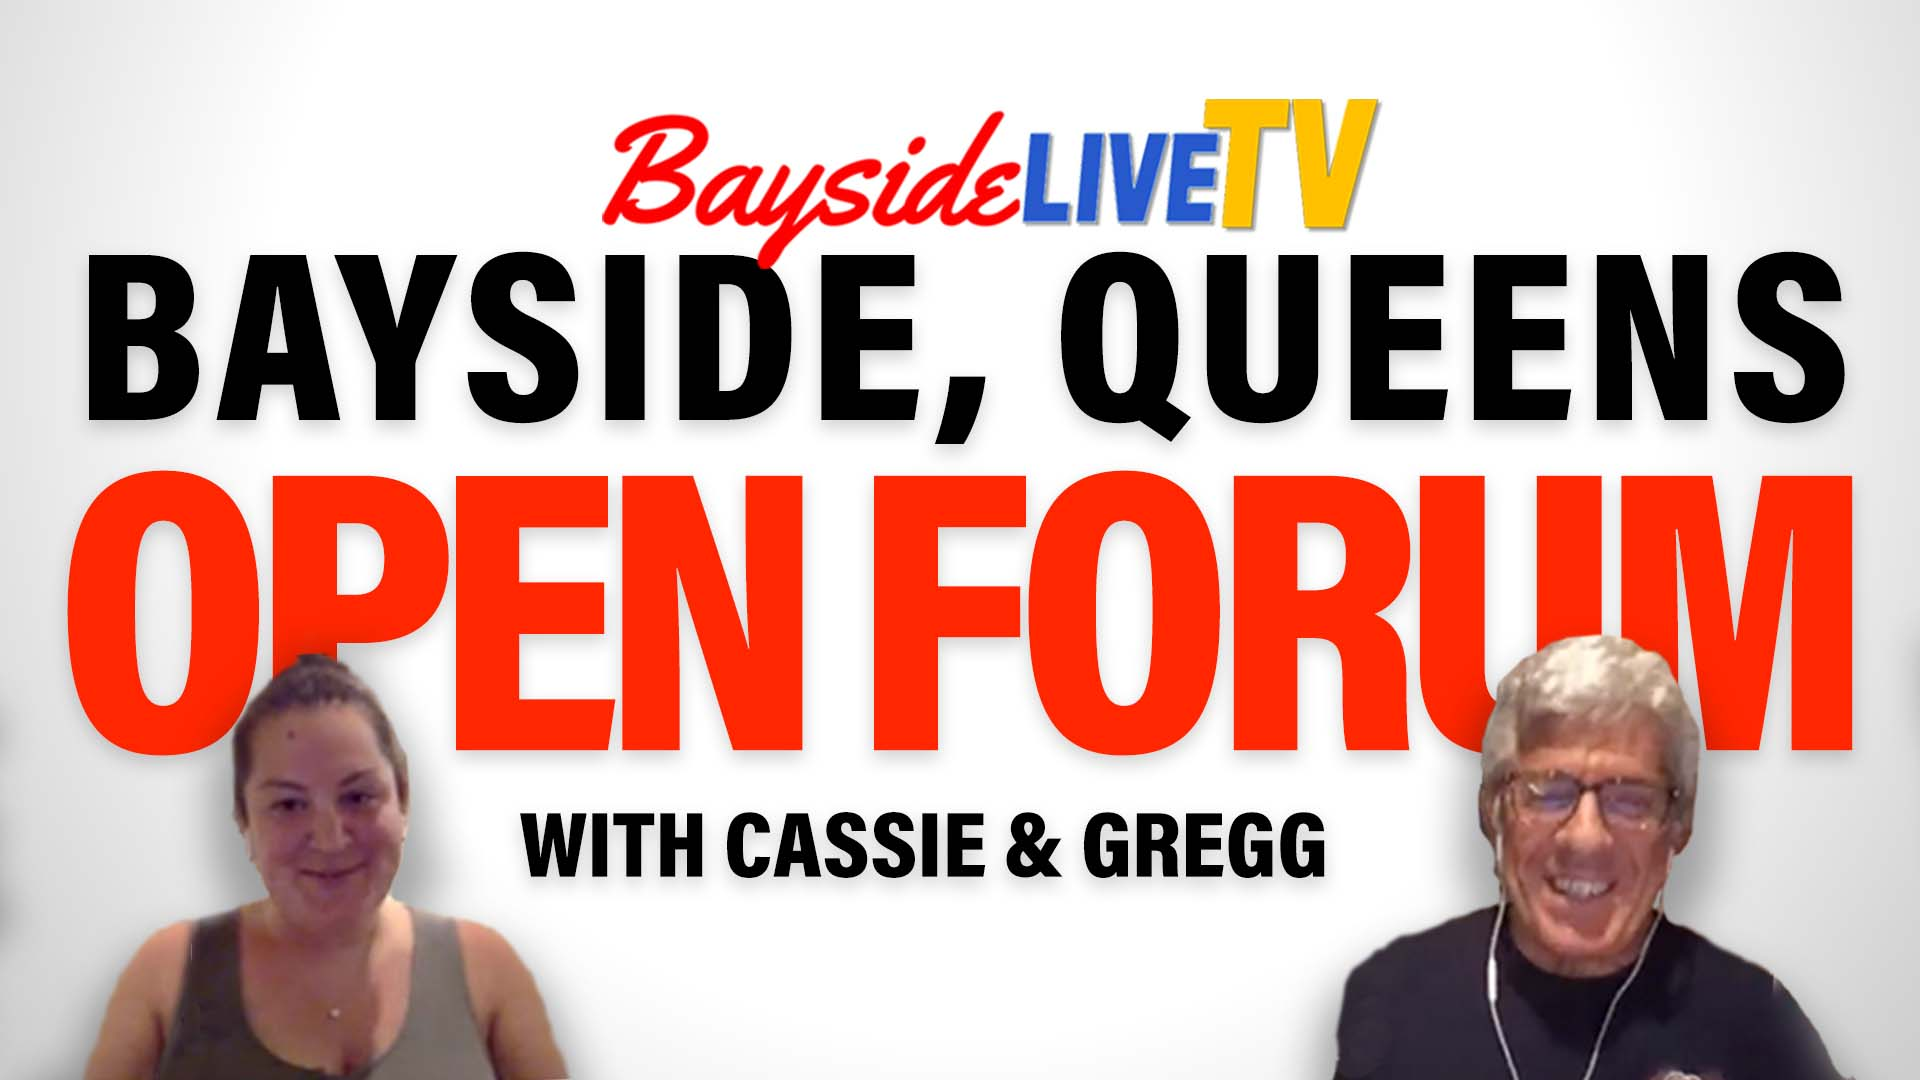 Bayside, Queens Open Forum – June 11, 2020